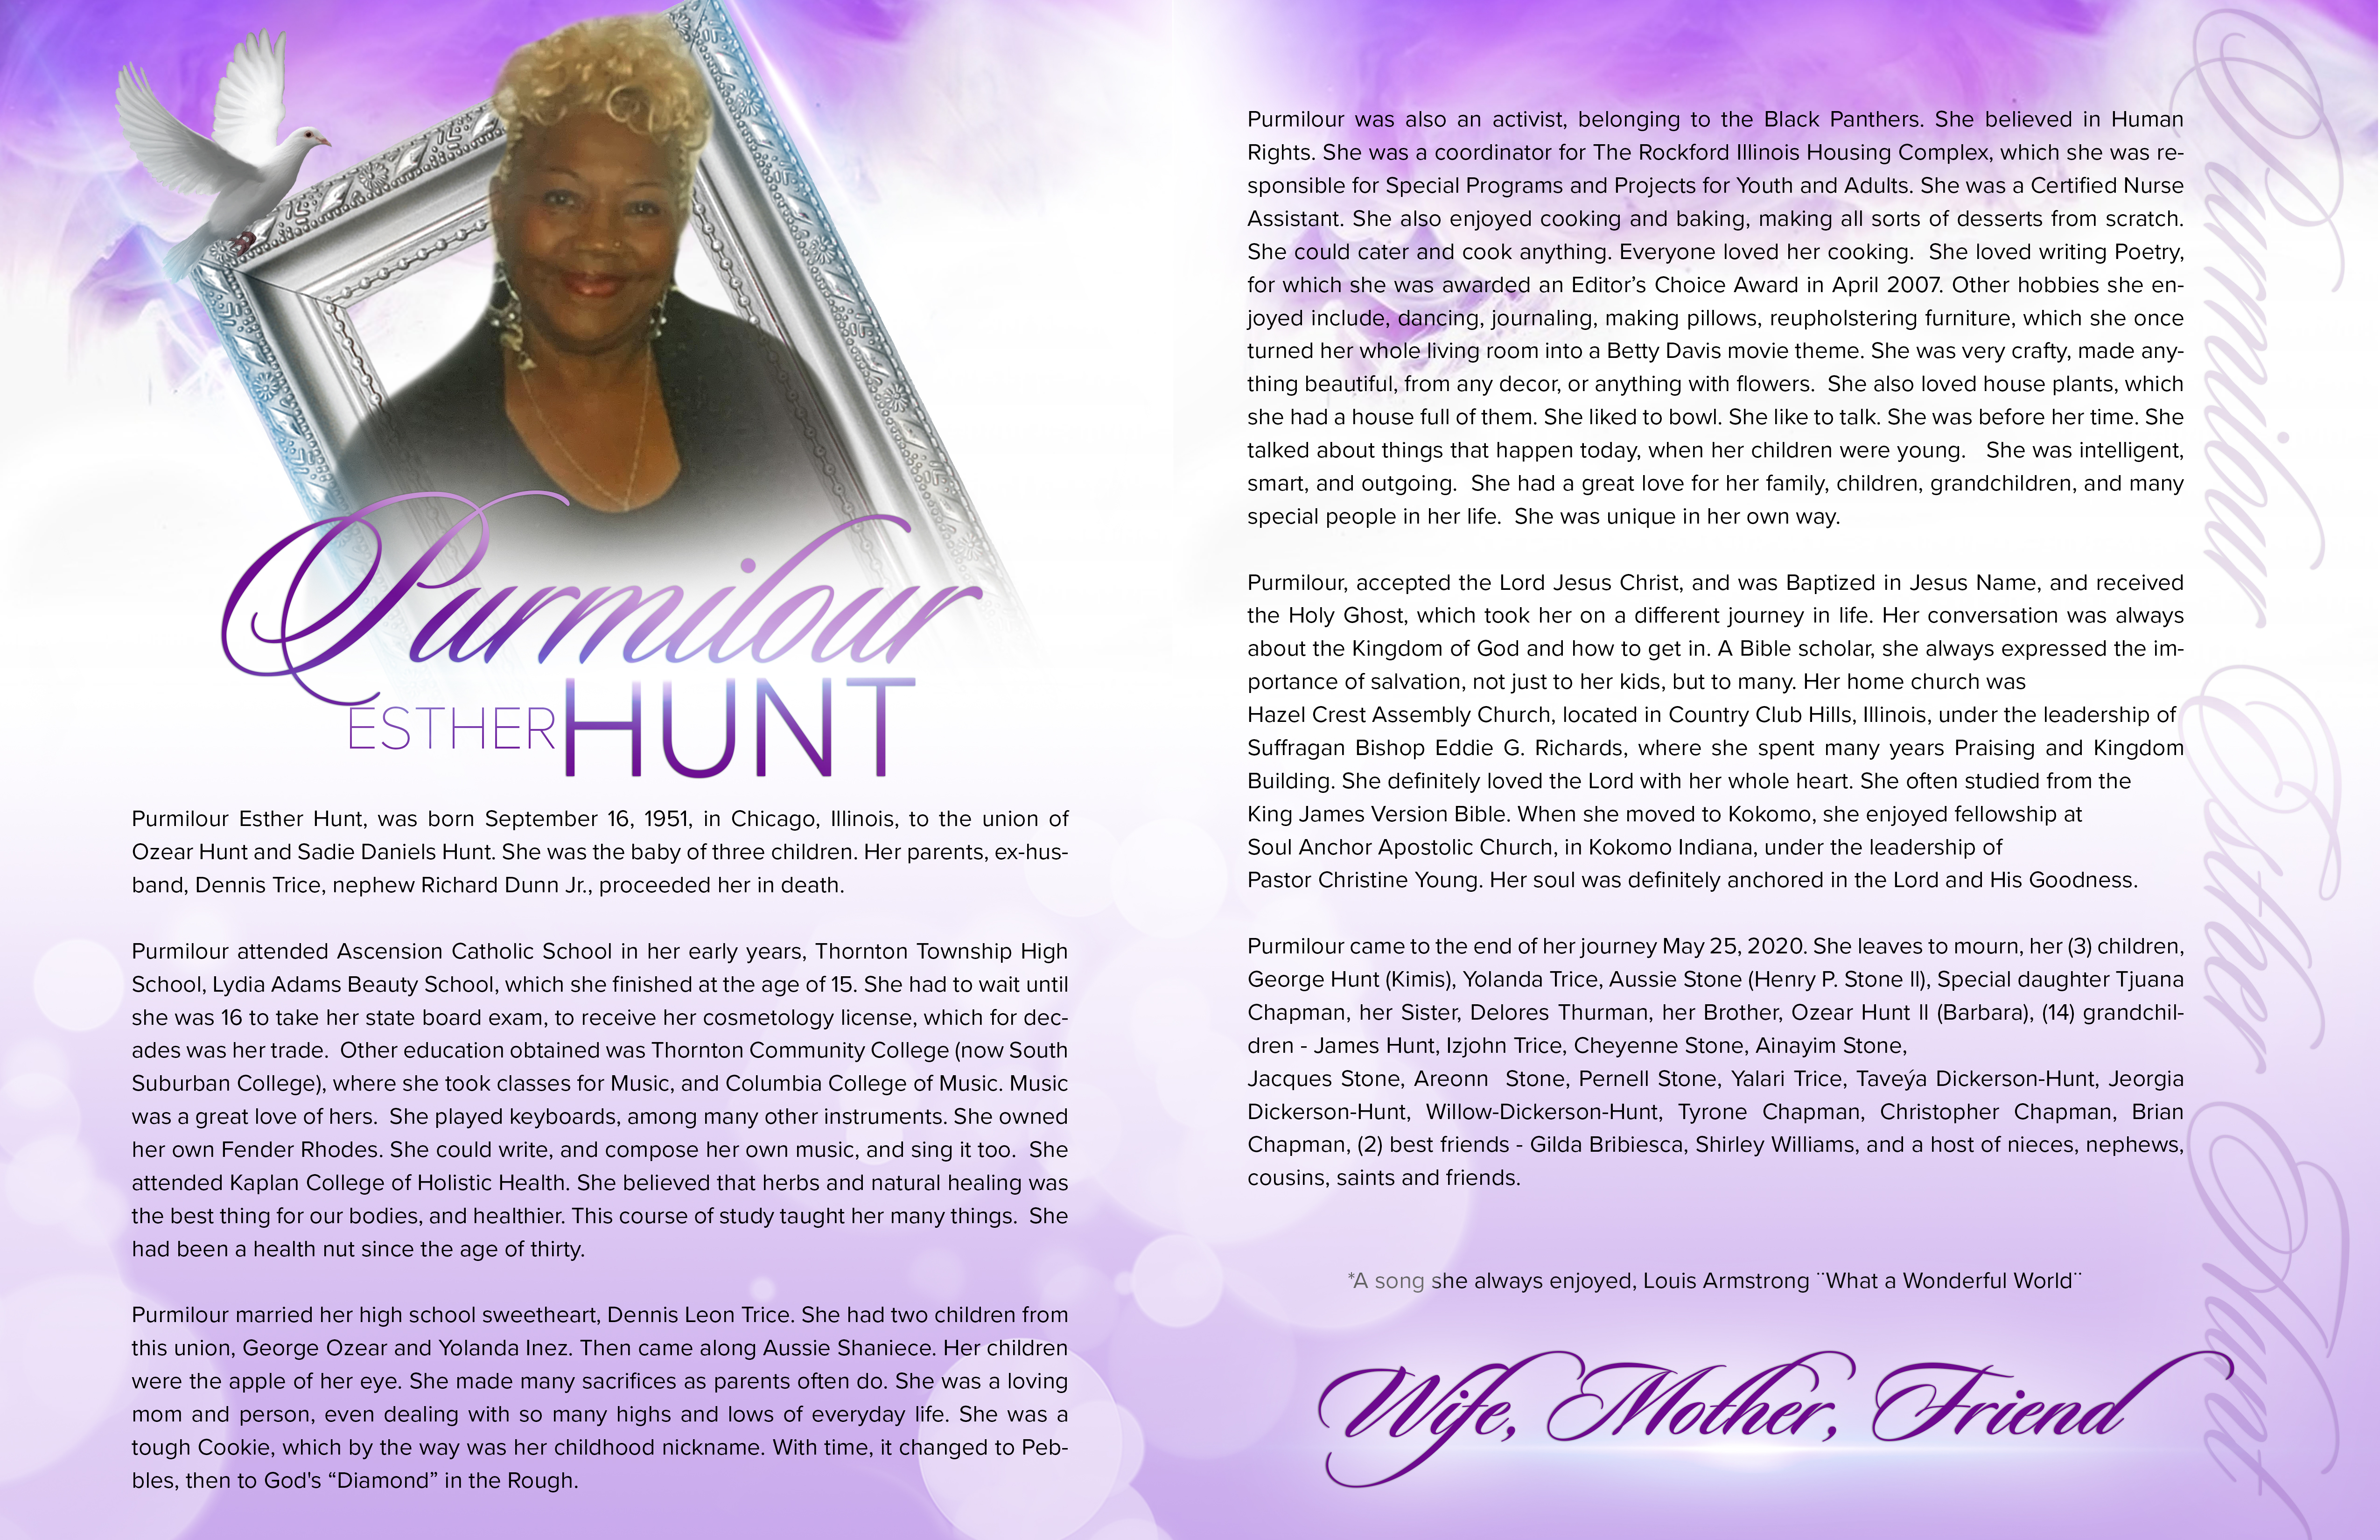 esther hunt obit 1